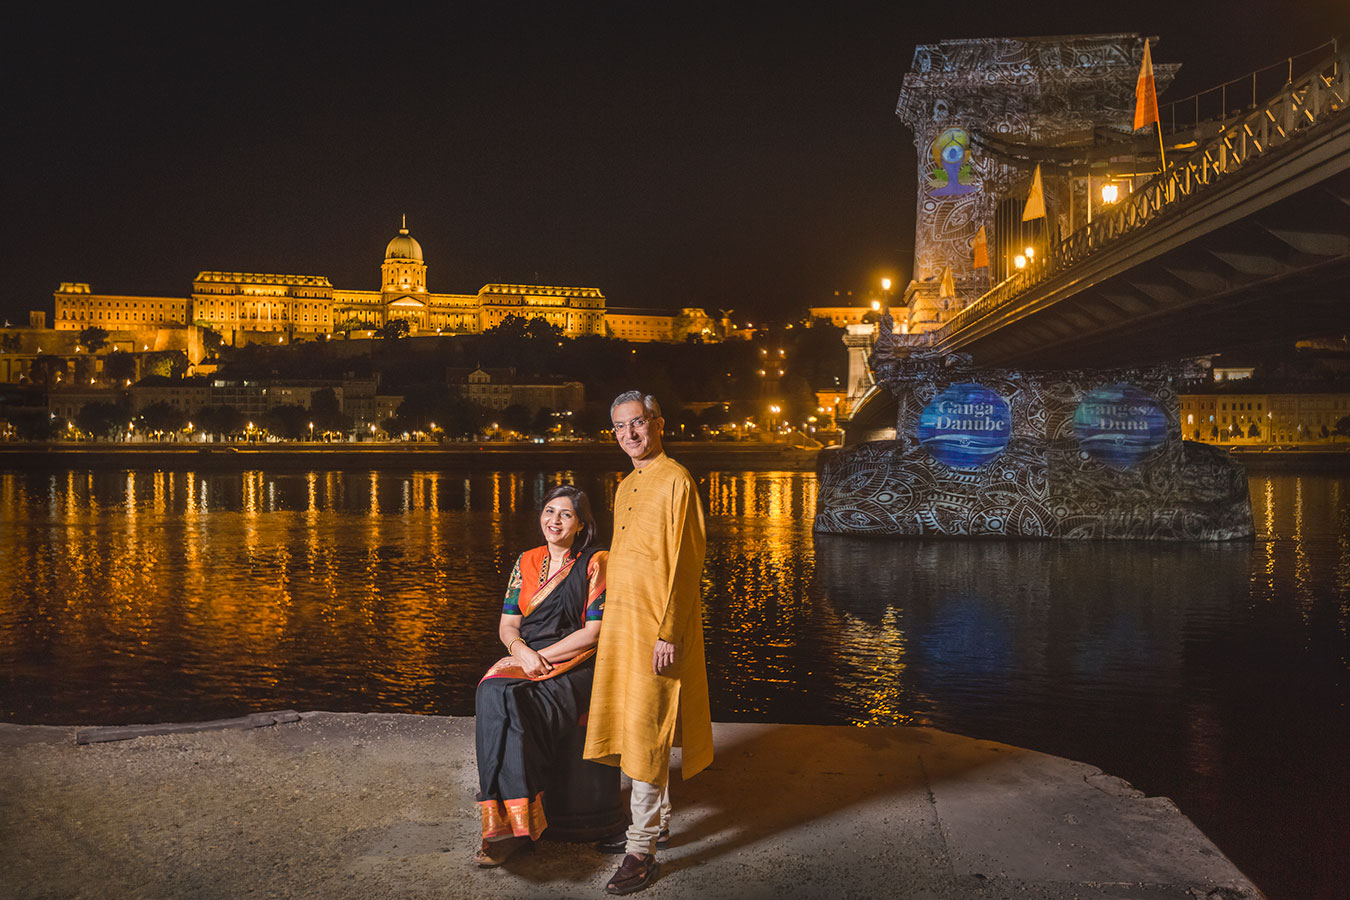 ind-indian-film-festival-2018-ganges-danube-festival-2017-budapest-chain-bridge-rahul-chhabra.jpg